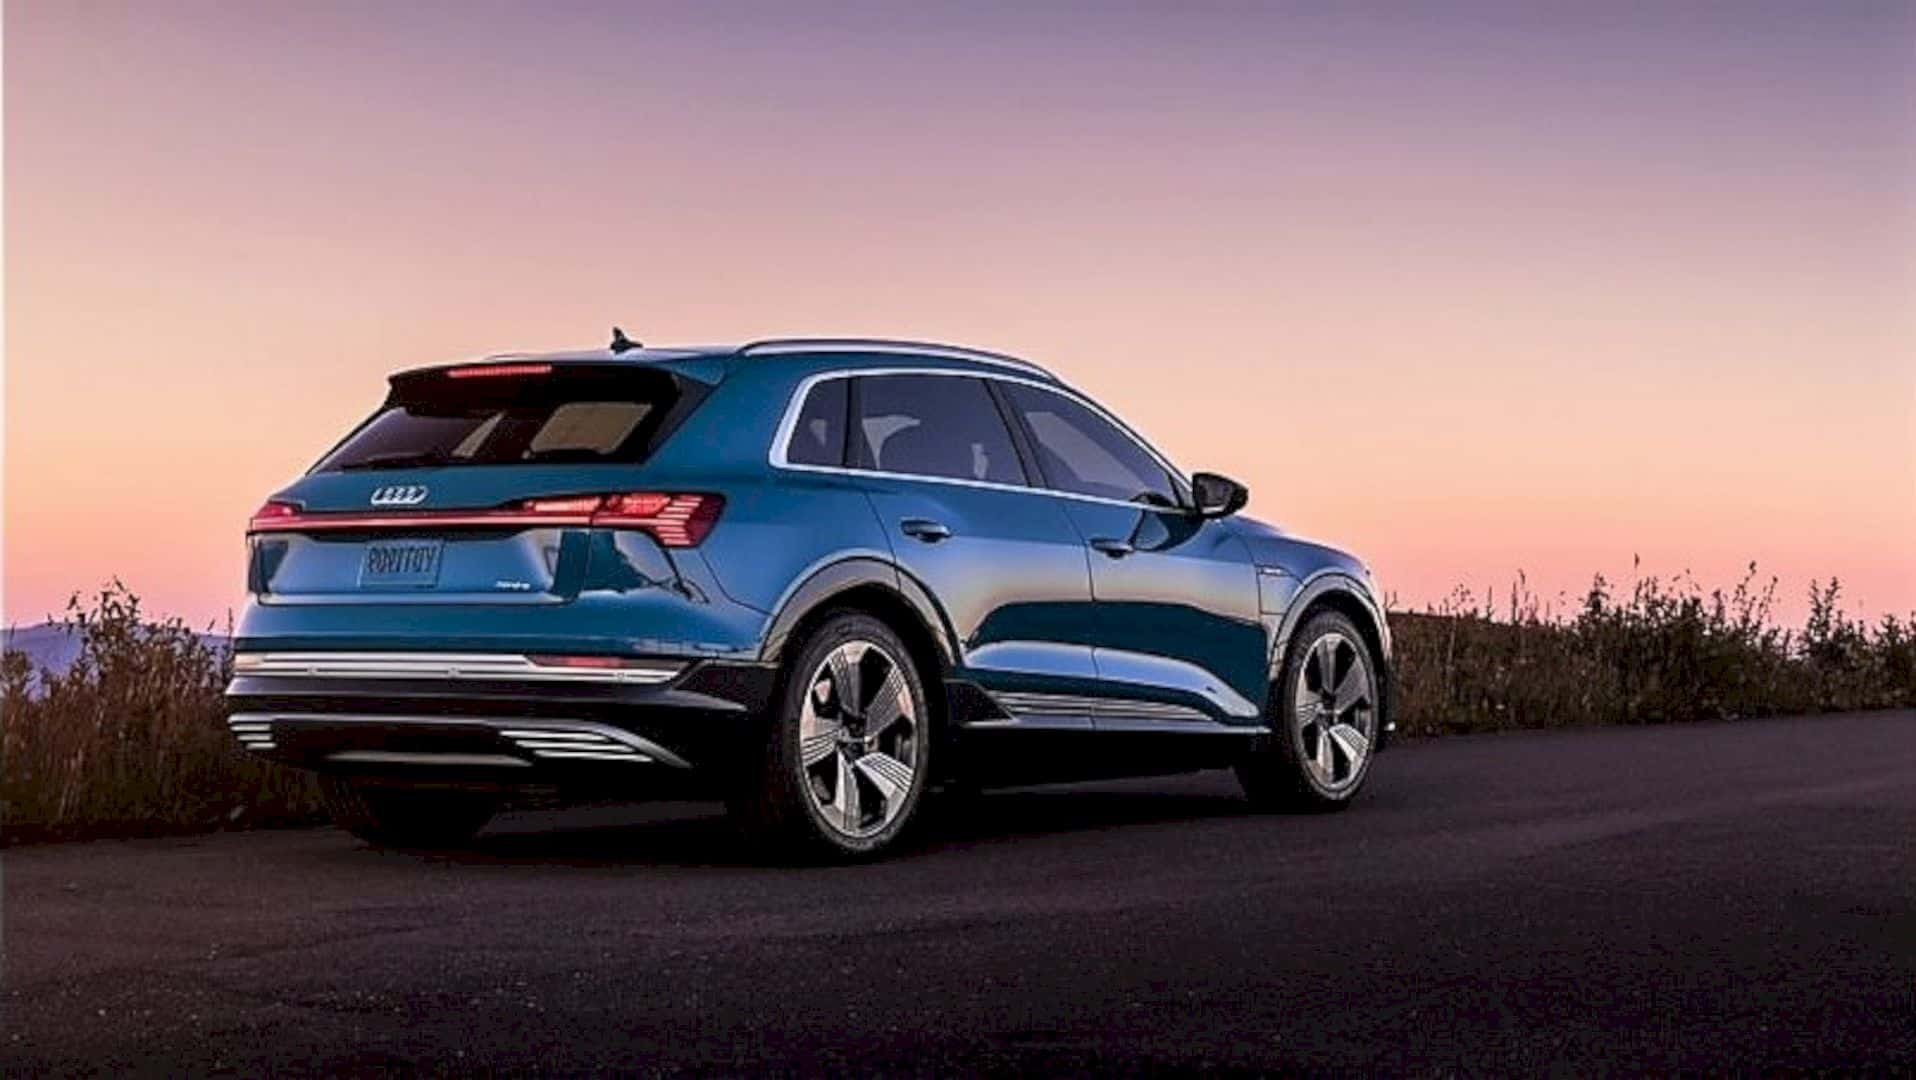 Audi e-tron: The Only Electric SUV Built with Audi DNA